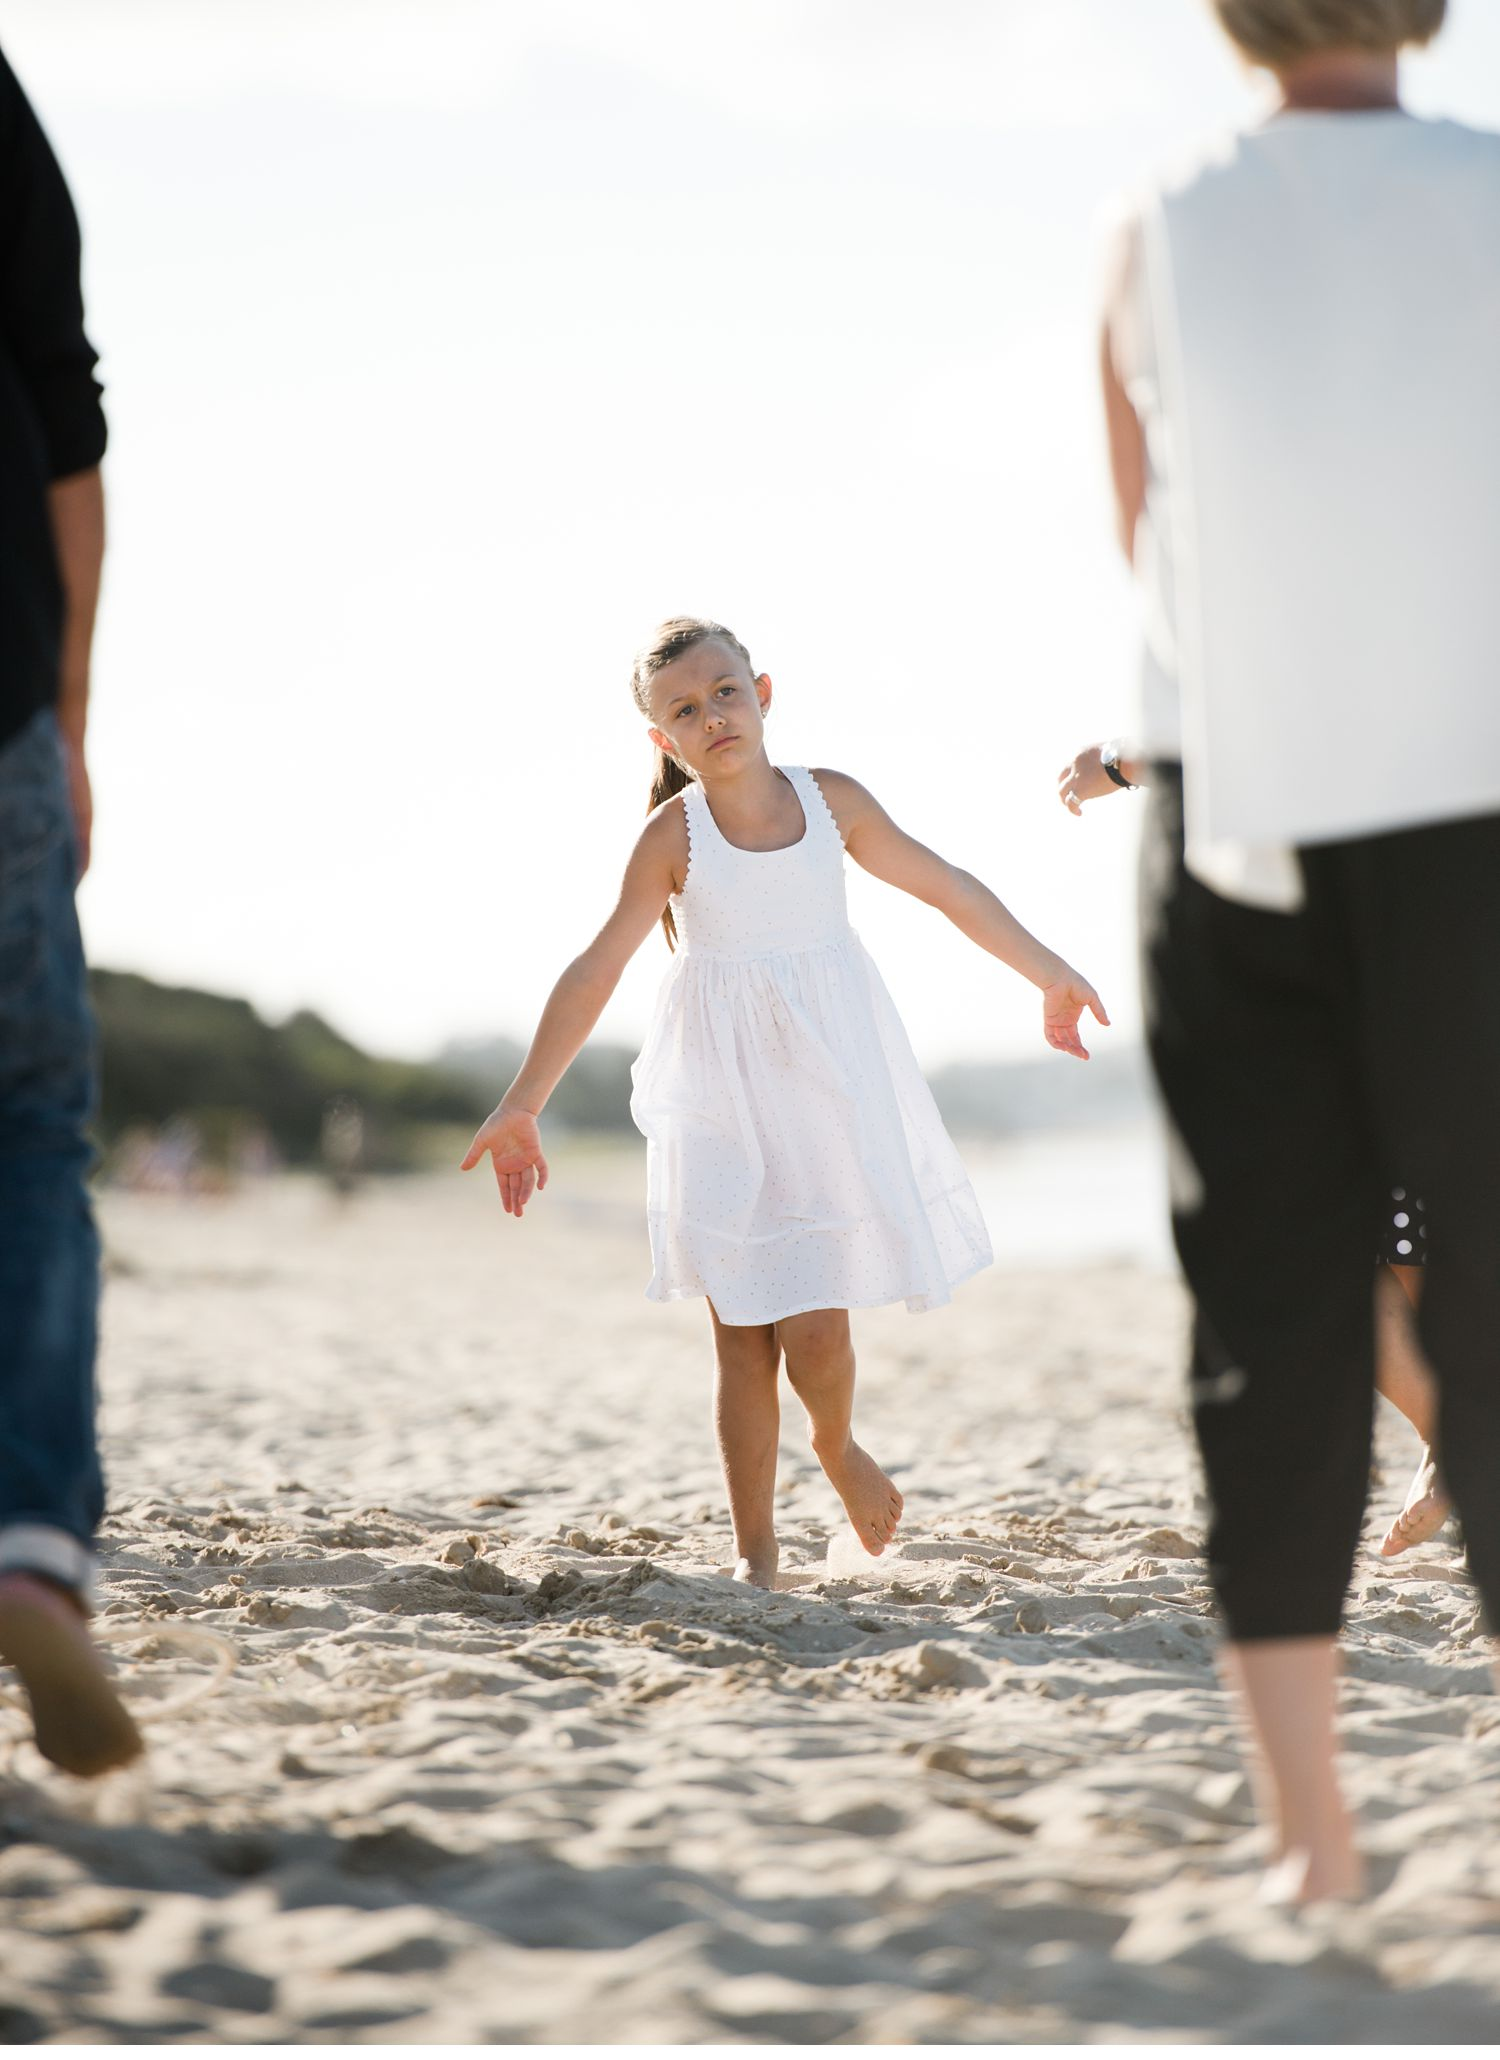 bec-stewart-photography-extended-family-photography-session-melbourne-australia-city-of-casey-38.jpg